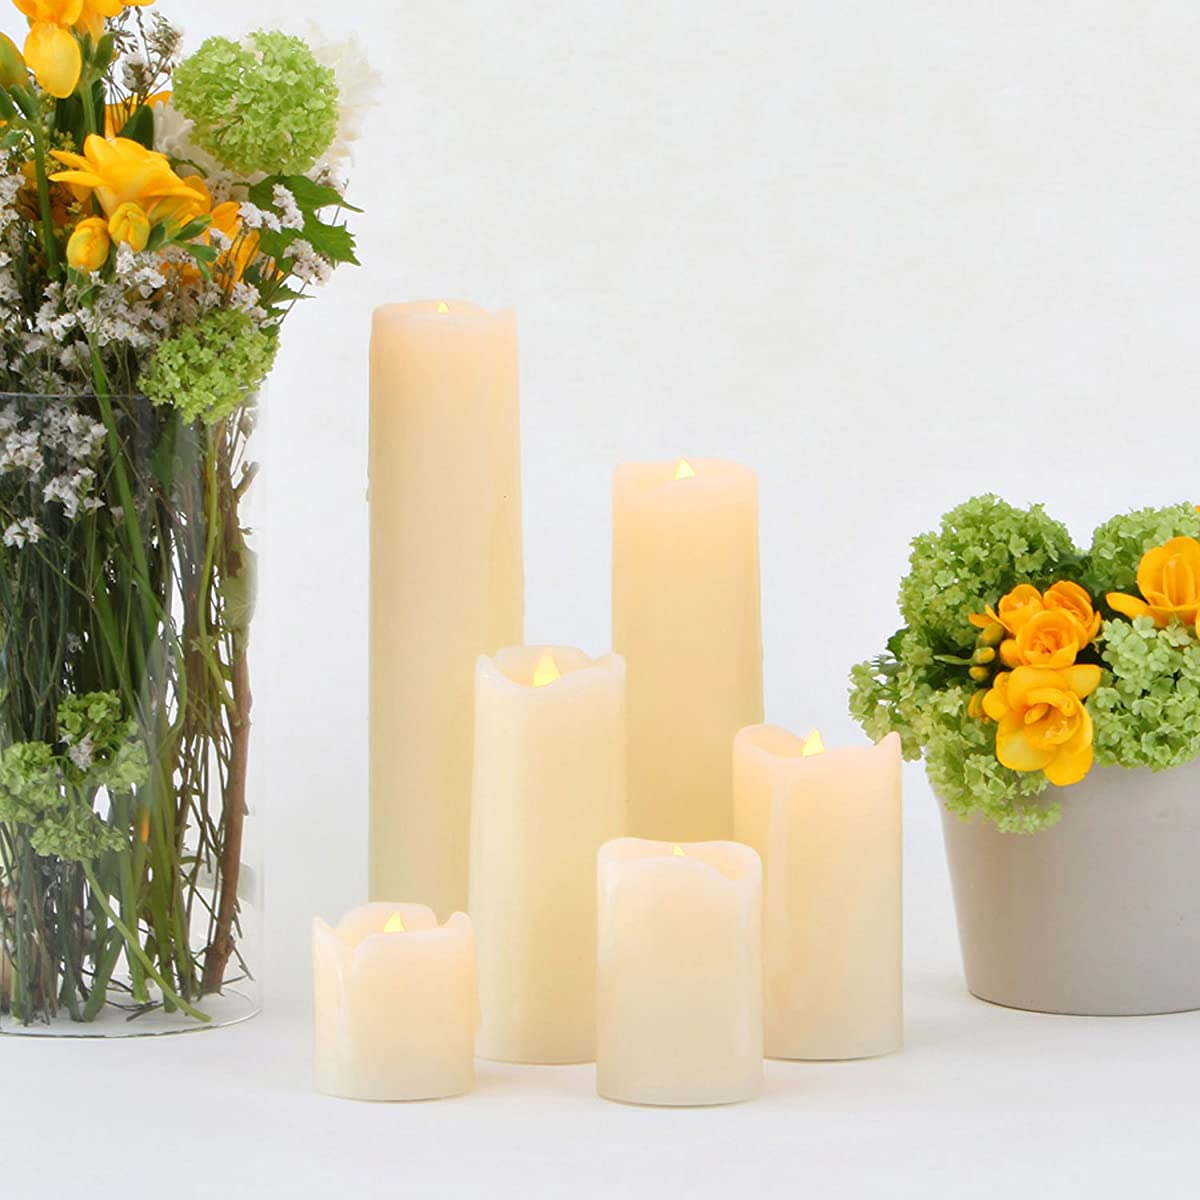 Variety Set of 6 Cream Slim Wax Drip Flameless Candles with Bright Warm White LEDs, Batteries Included